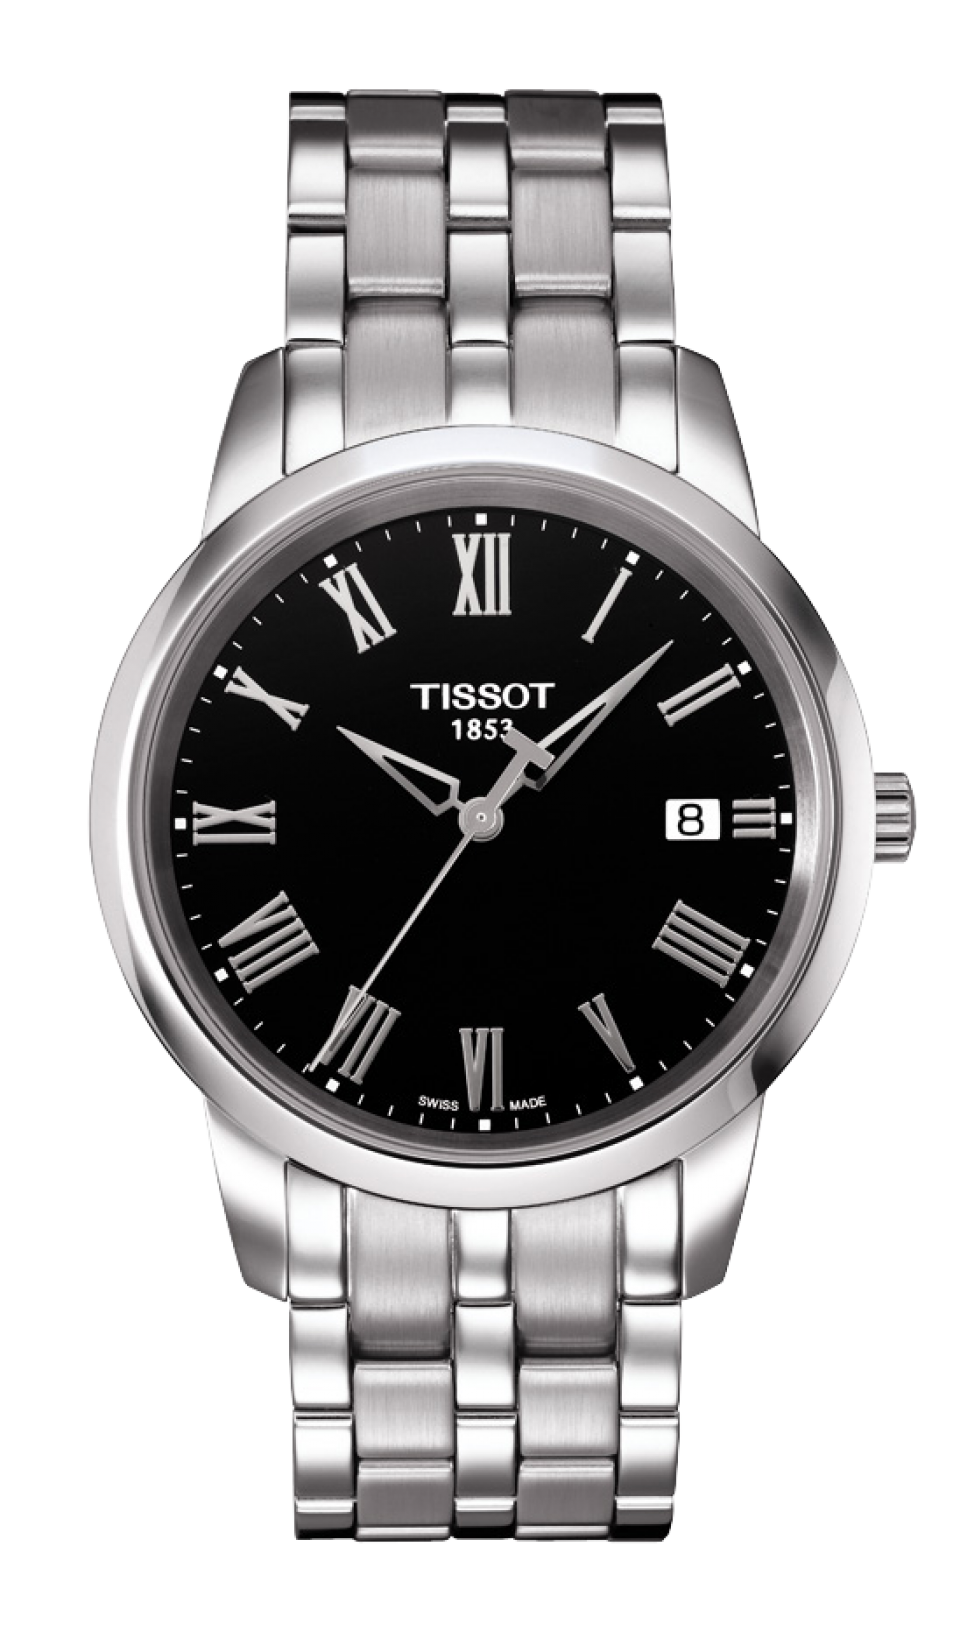 Tissot watches Savonette pocket watch by Azzi Jewelers